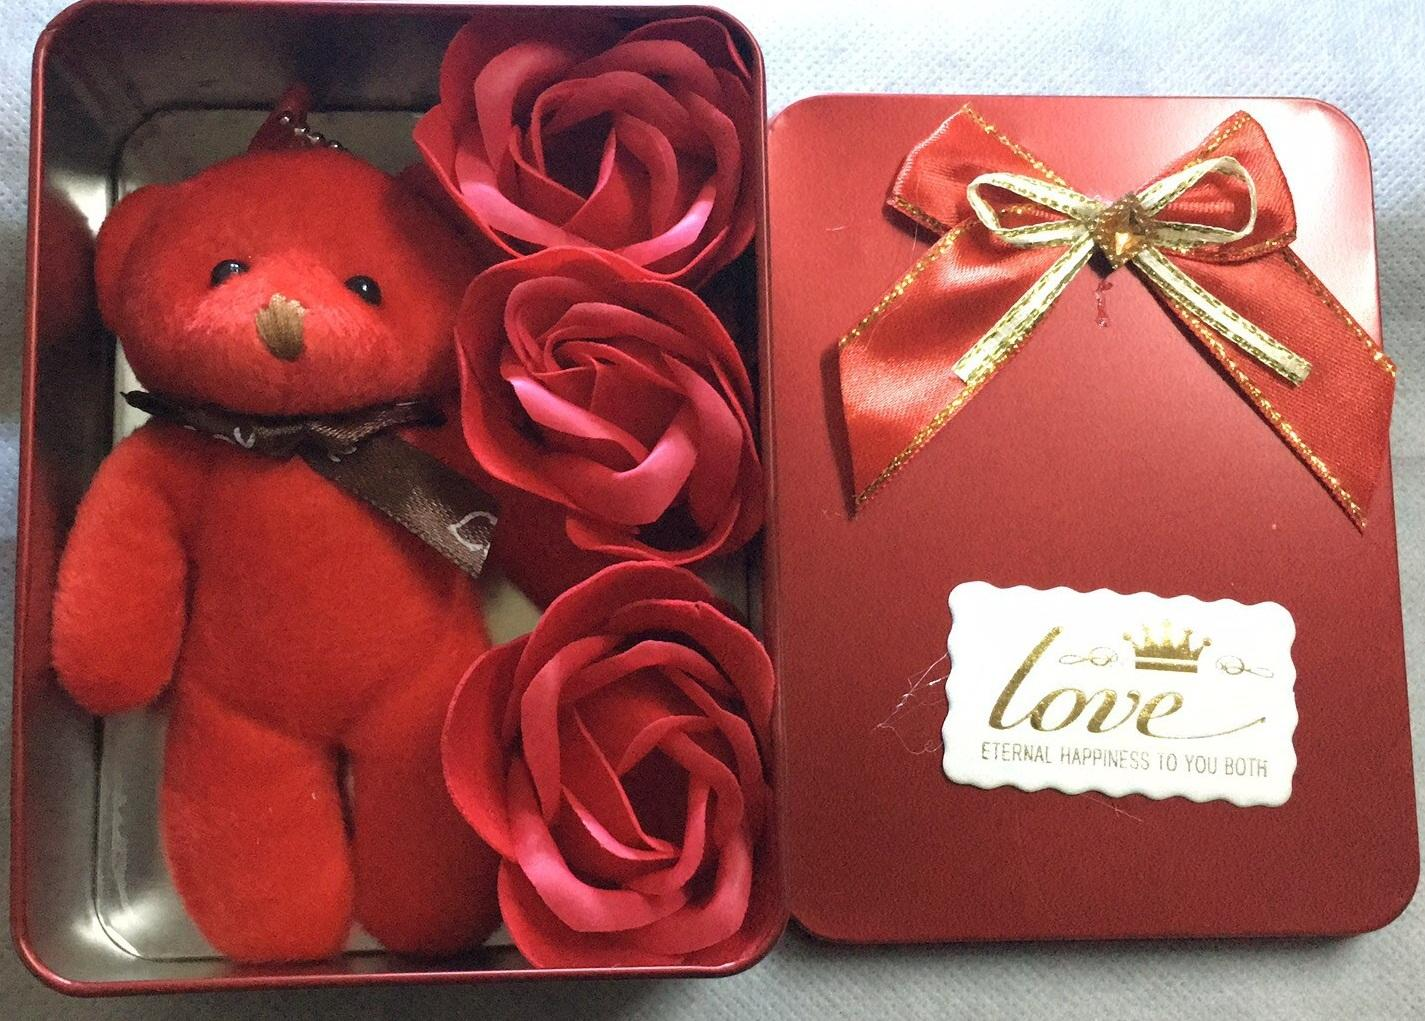 3pcs Rectangular Scented Roses Bath Soap Gift Box With 1 Bear For Anniversary/ Birthday/ Wedding/ Valentine's Day/ Mother's Day By Lucky Living Shop.